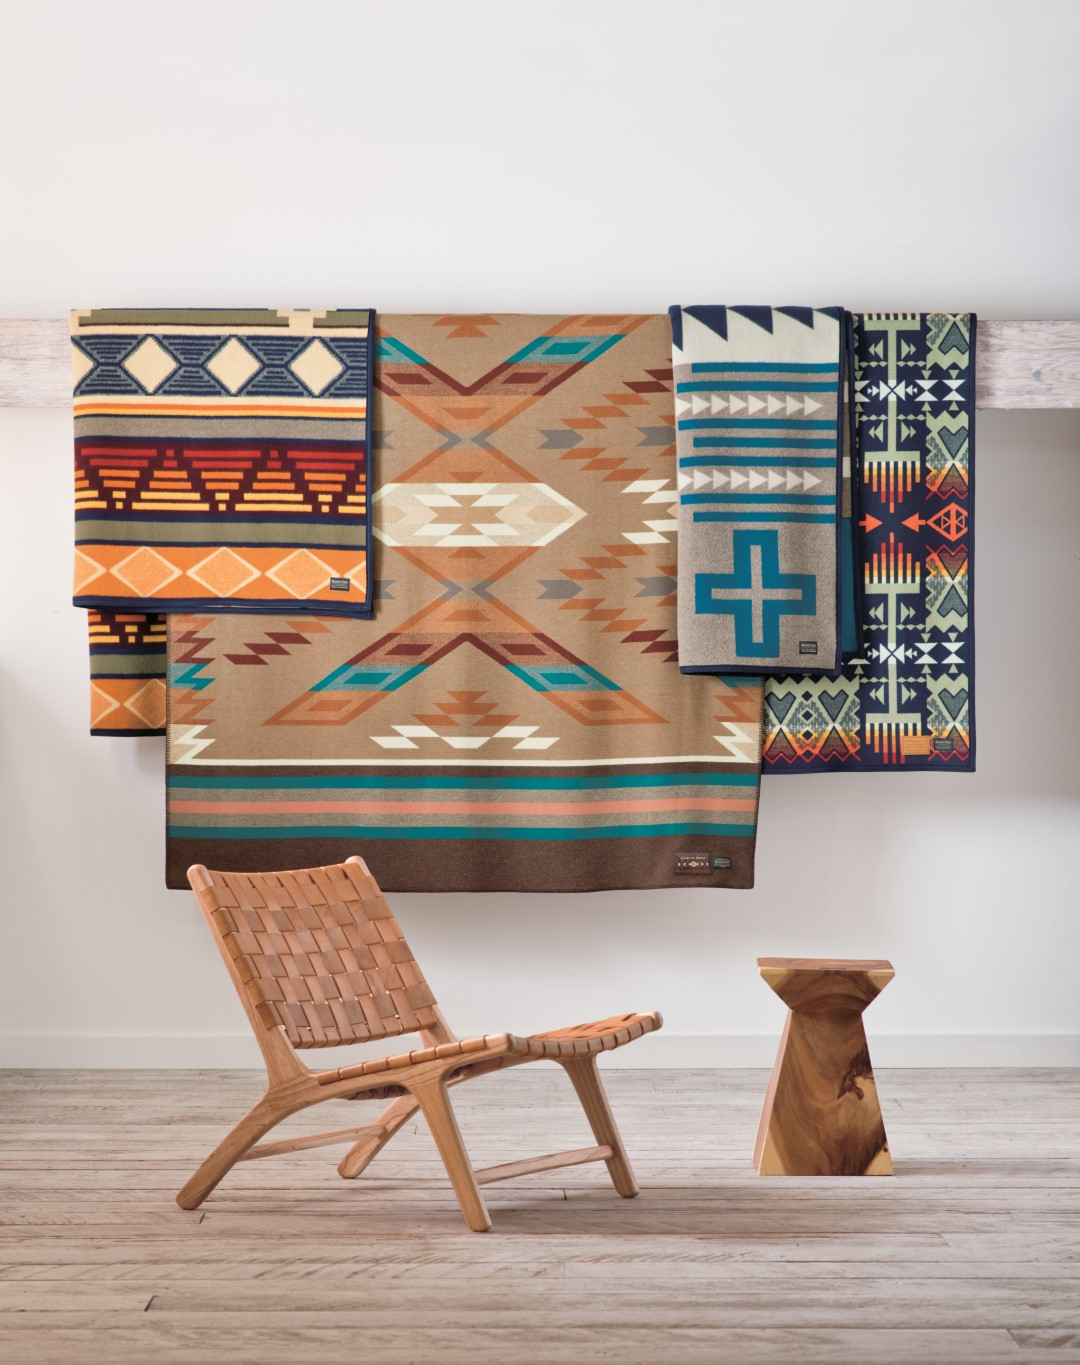 Patterned blankets hanging on wall with leather chair